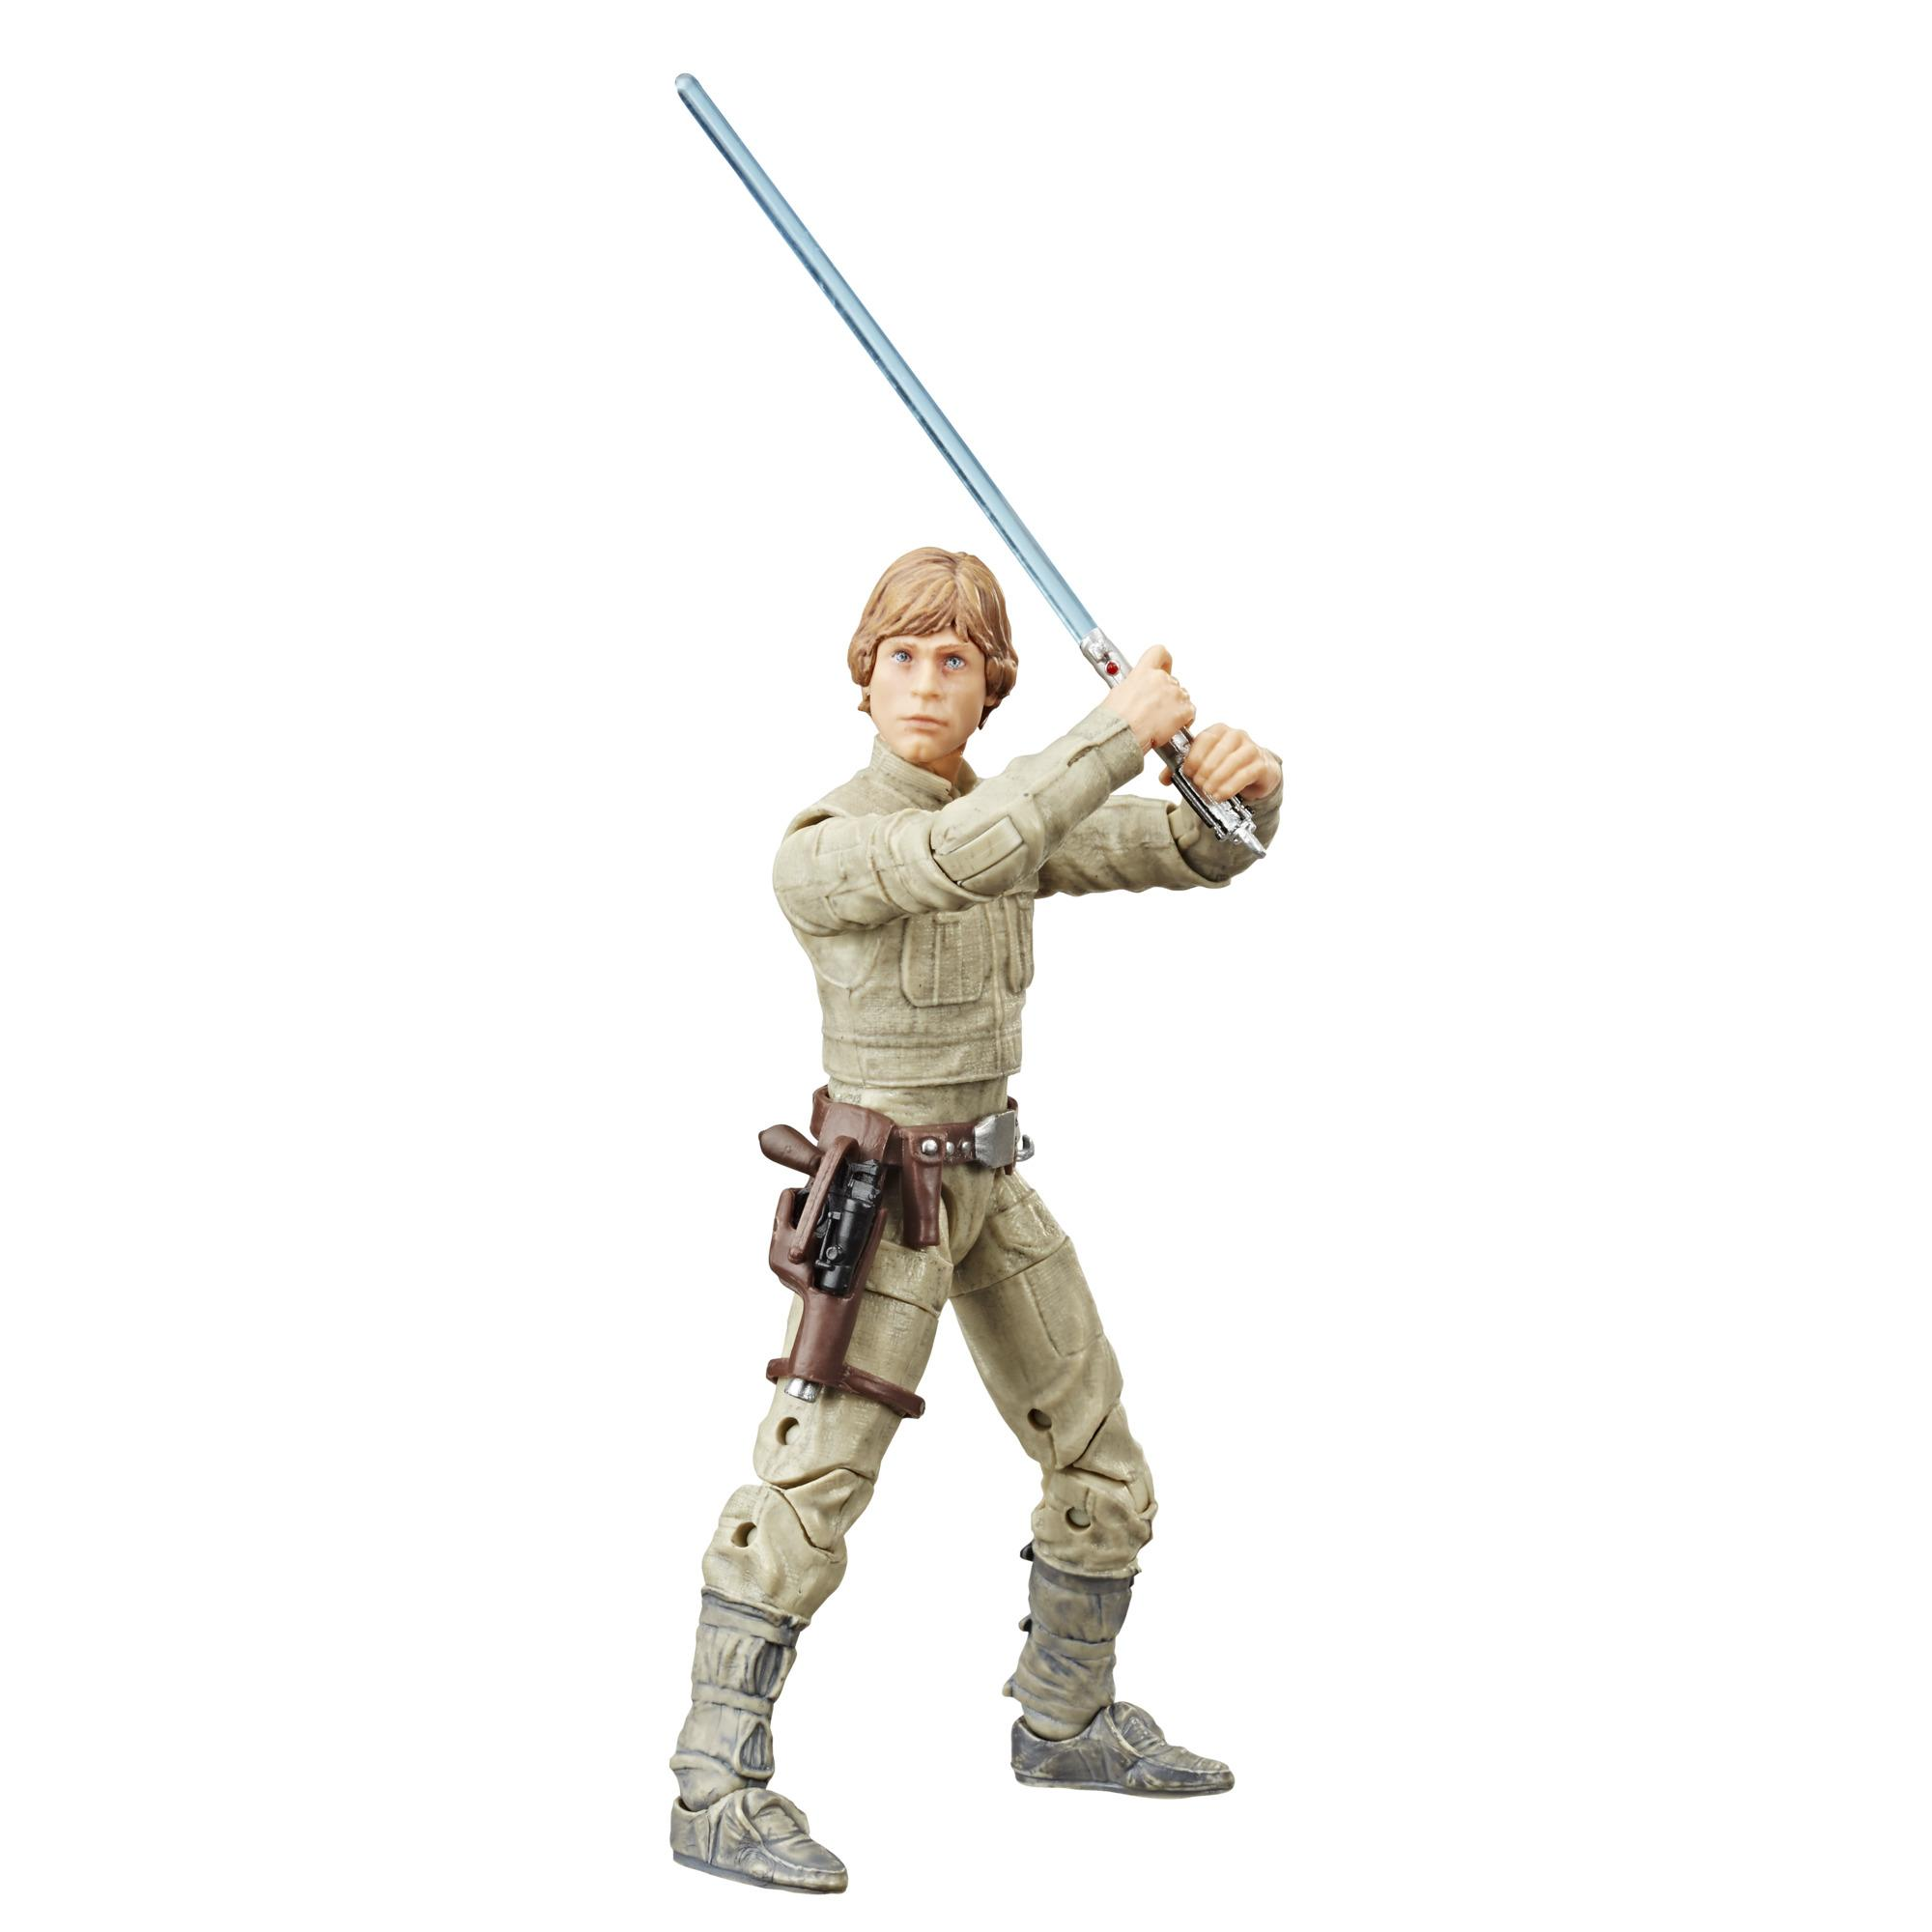 Star Wars The Black Series - Luke Skywalker (Bespin) - Star Wars: El Imperio contraataca - Figura del 40.º aniversario